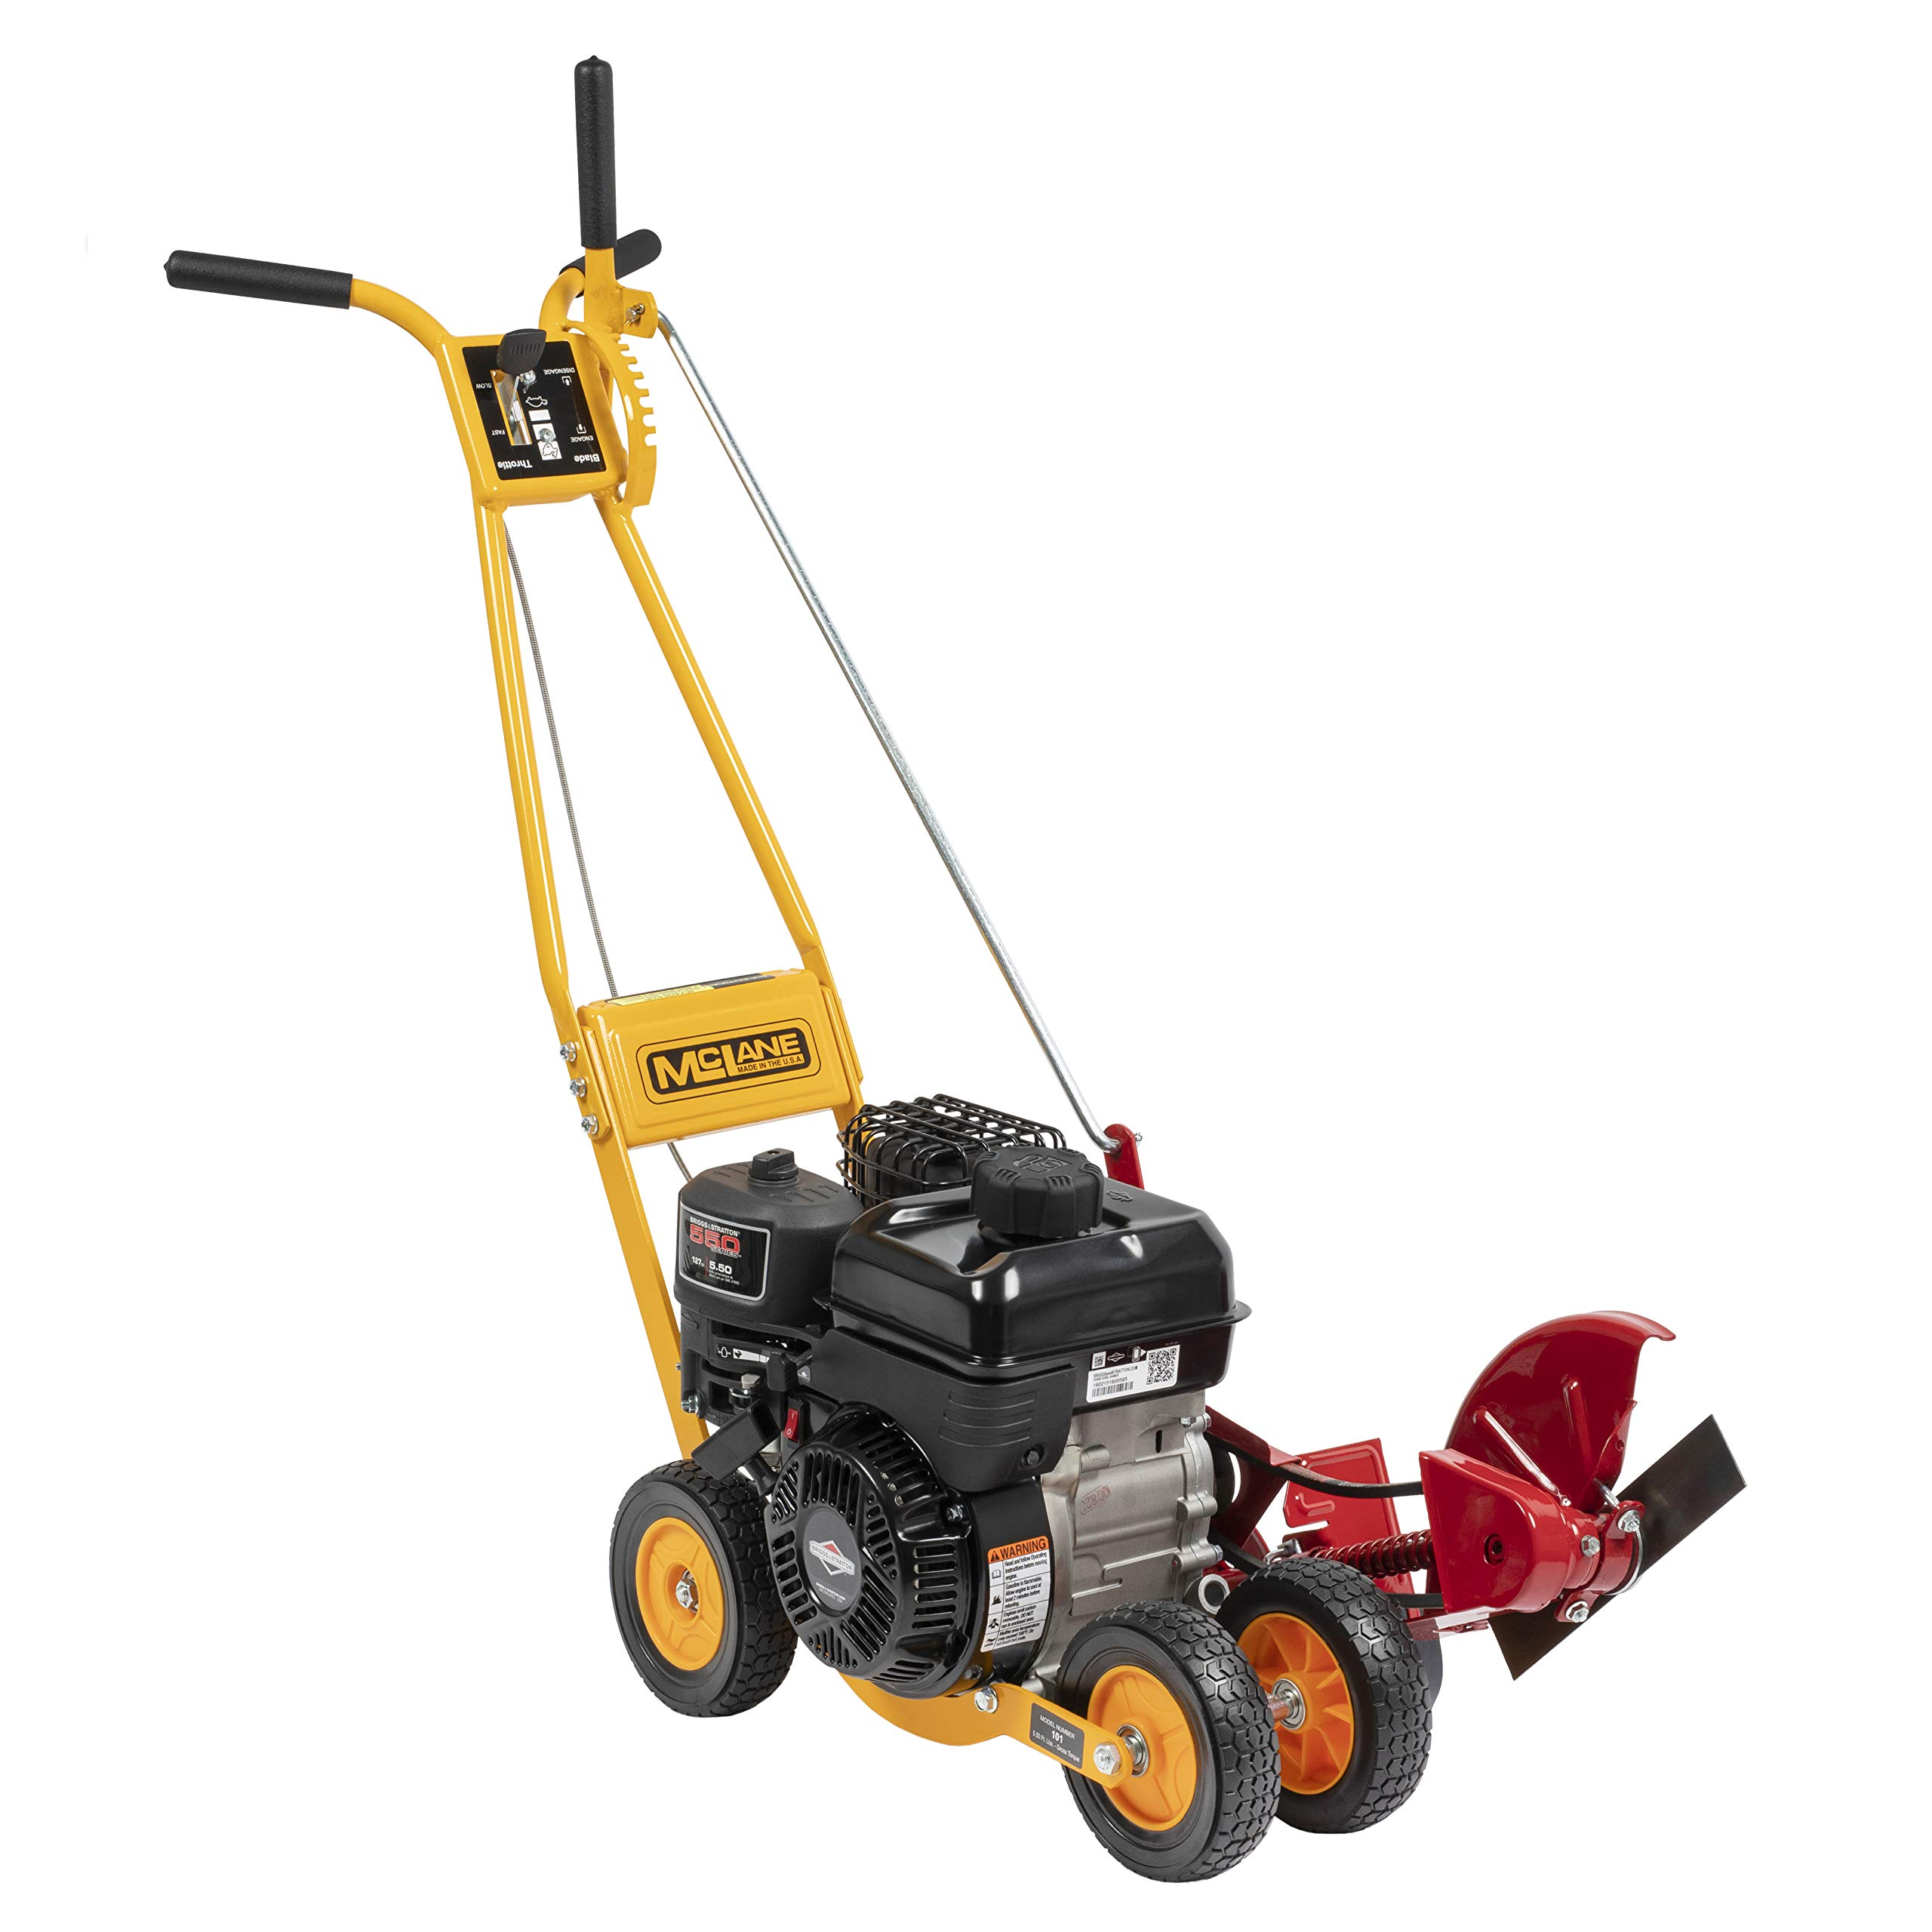 McLane 101-4.75GT-7  9-Inch Gas Powered Lawn Edger, 5.50 Gross Torque B&S Engine 7'' Wheels